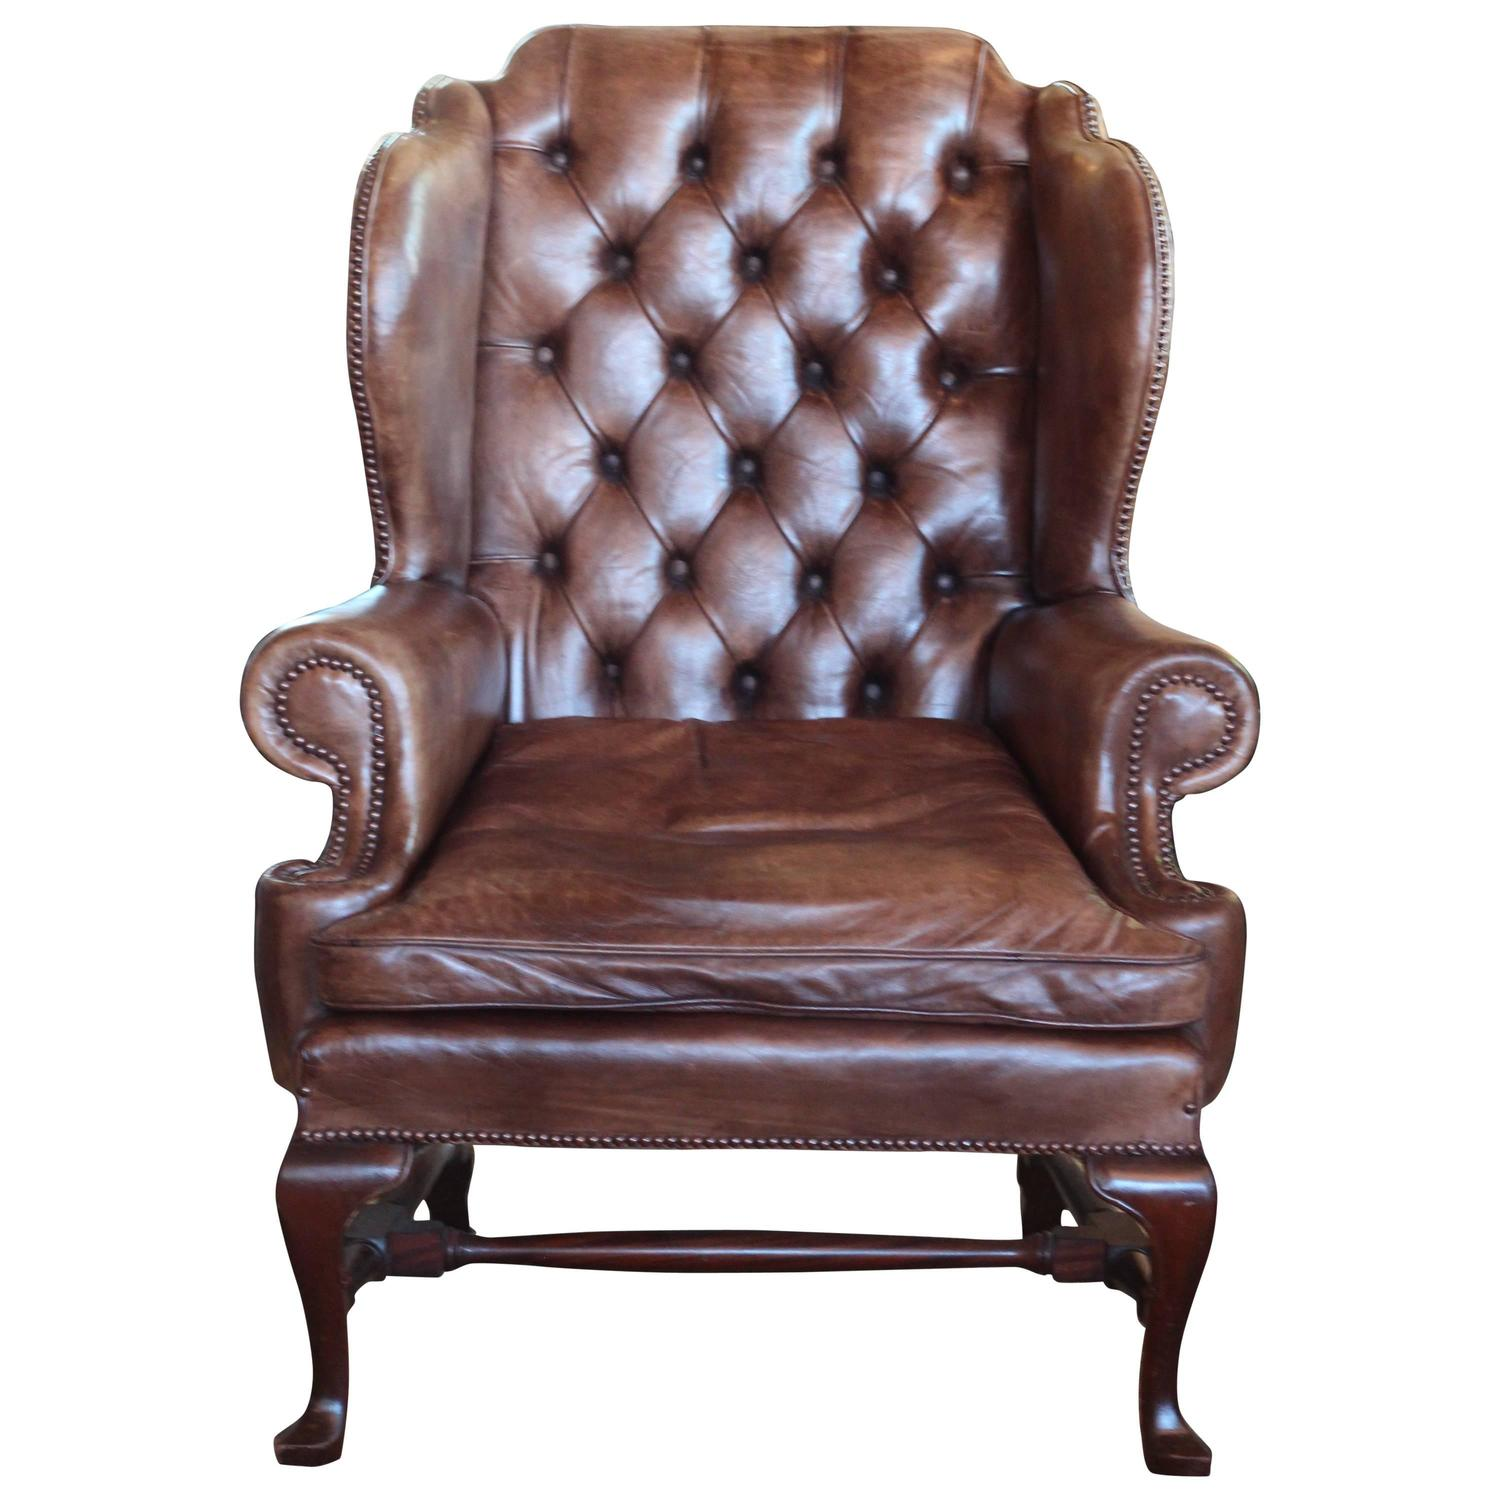 Early 20th Century English Leather Wing Chair For Sale at